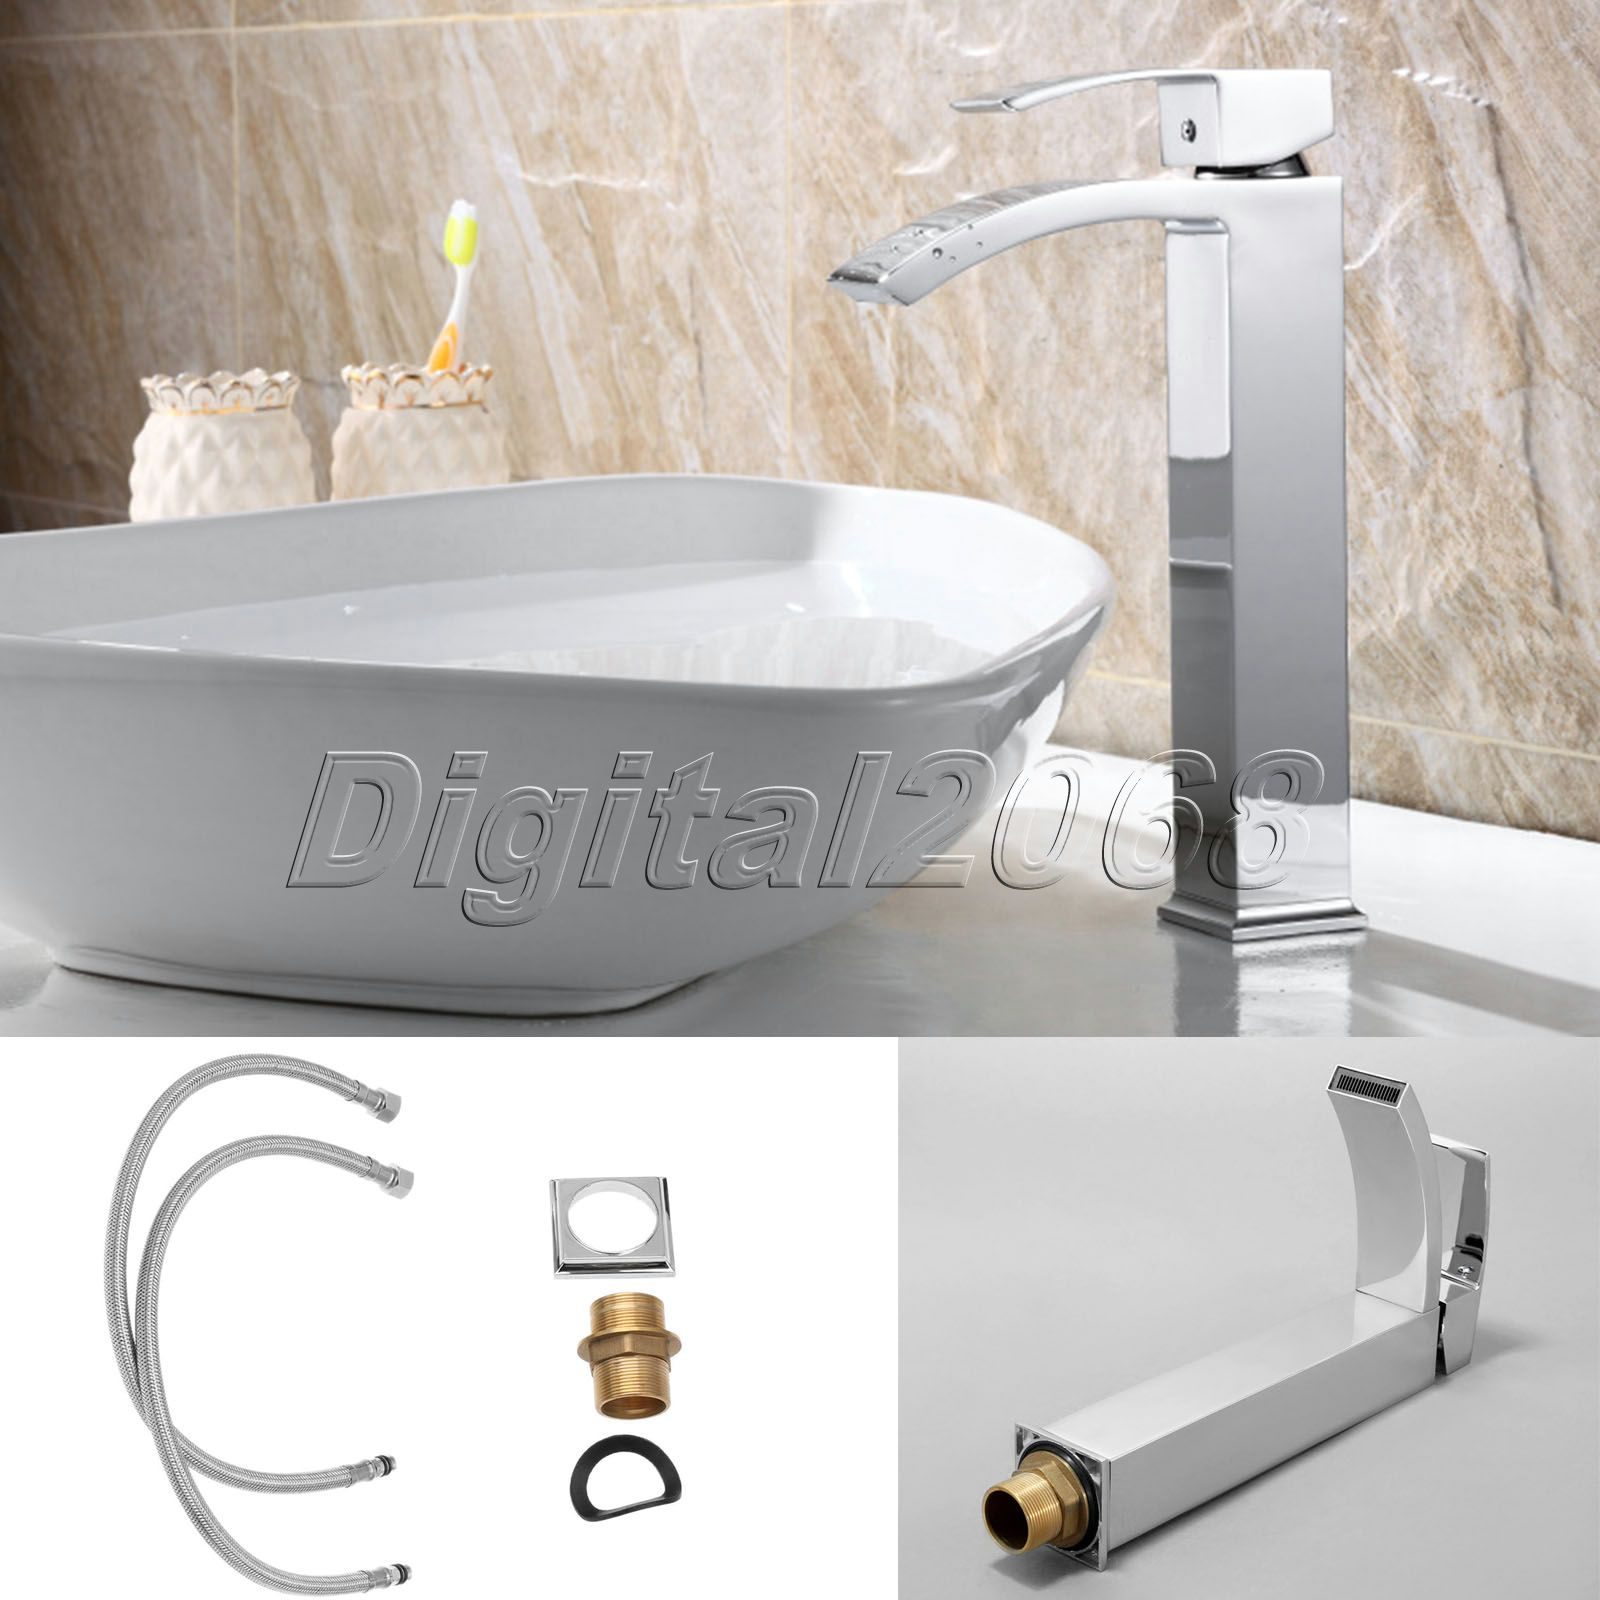 Ceramic Valve Spout Brushed Nickel Kitchen Faucet Bathroom Basin Faucet Vessel One Hole Handle